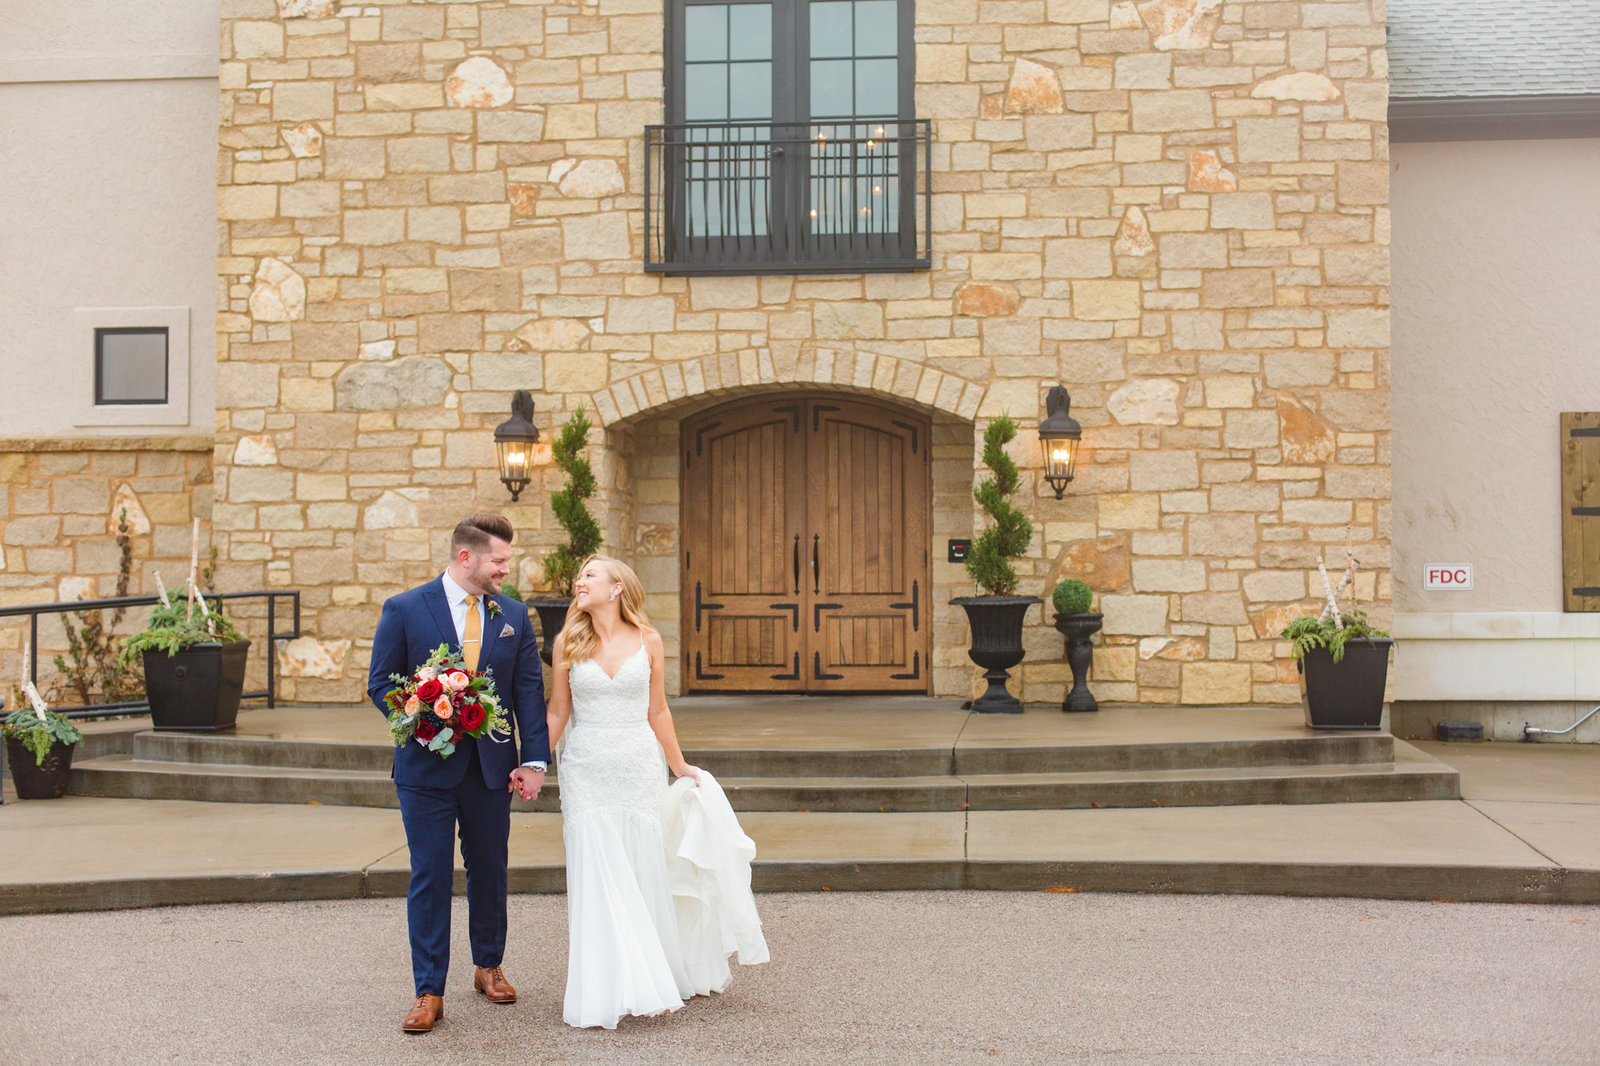 st-louis-wedding-photographer-silver-oaks-chateau-belleville-wedding-photography-alton-illinois-53